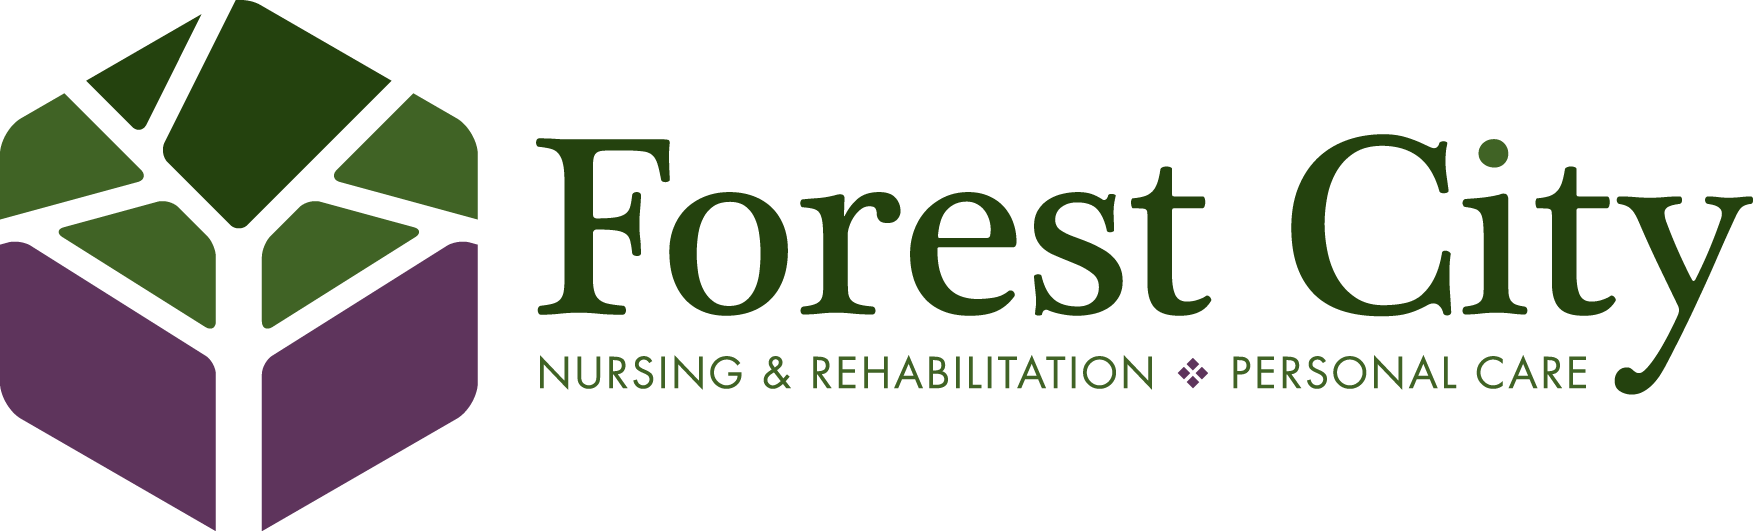 Forest City Nursing and Rehabilitation